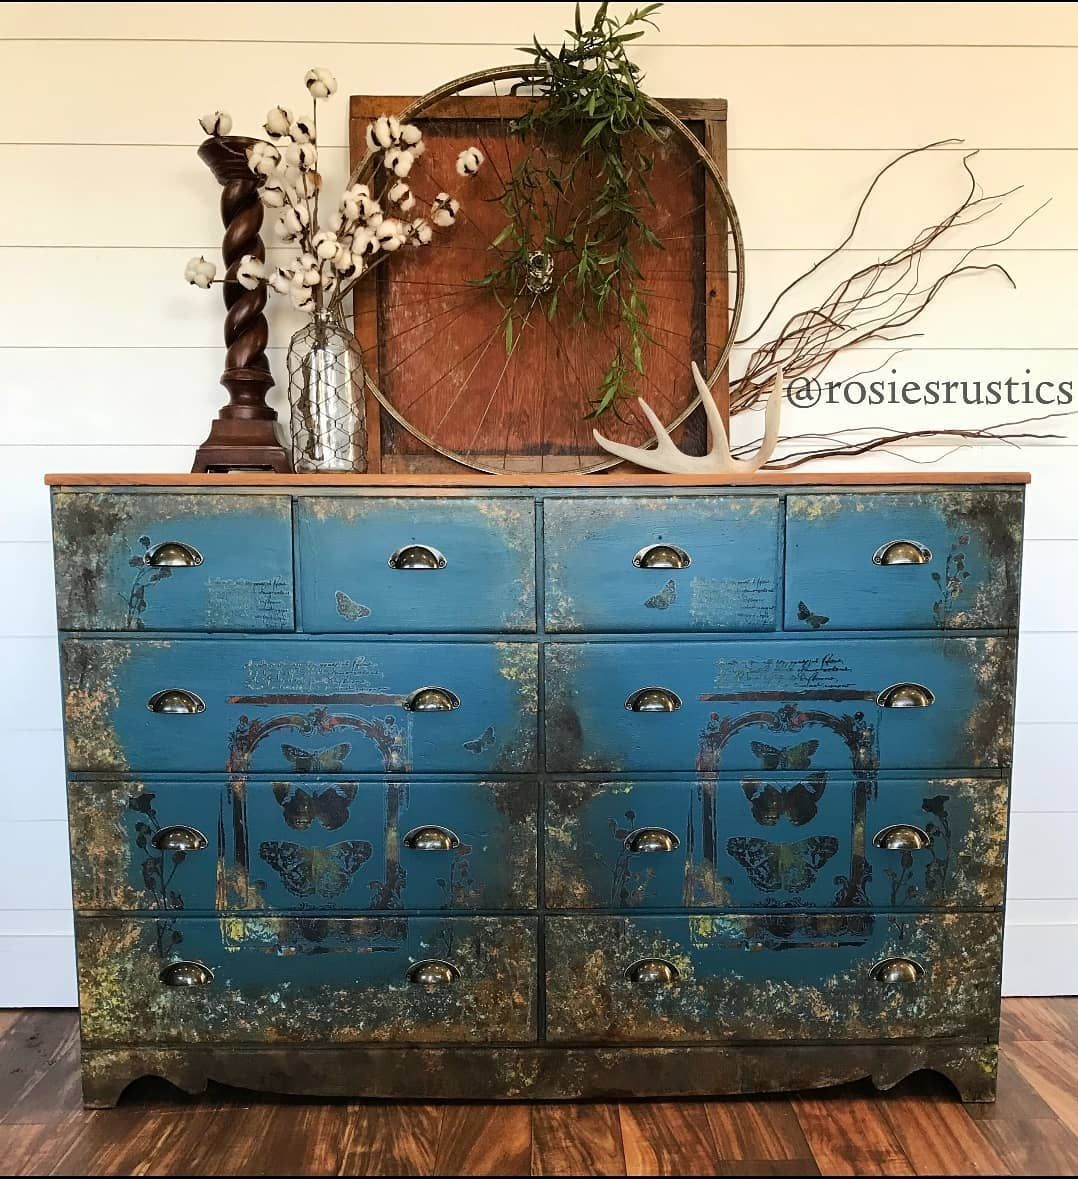 What a stunning piece by Rosie's Rustics. She used Maisie and Willows Steampunk II decor Transfer. #myvintagehome #dailydecordose #myhomevibes #cornerofmyhome #upcycledhome #upcycledfurniture #relovedfurniture #furnitureflip #adoredandrestored #furnituremakeover #fleamarketstyle #paintedfurniture #handpaintedfurniture #recycledfurniture #furniturererehab #furniturepainter #furnituretransformation #relovedfurniture #restoredfurniture #diyfurnituremakeover #restyledfurniture #repurposedfurniture